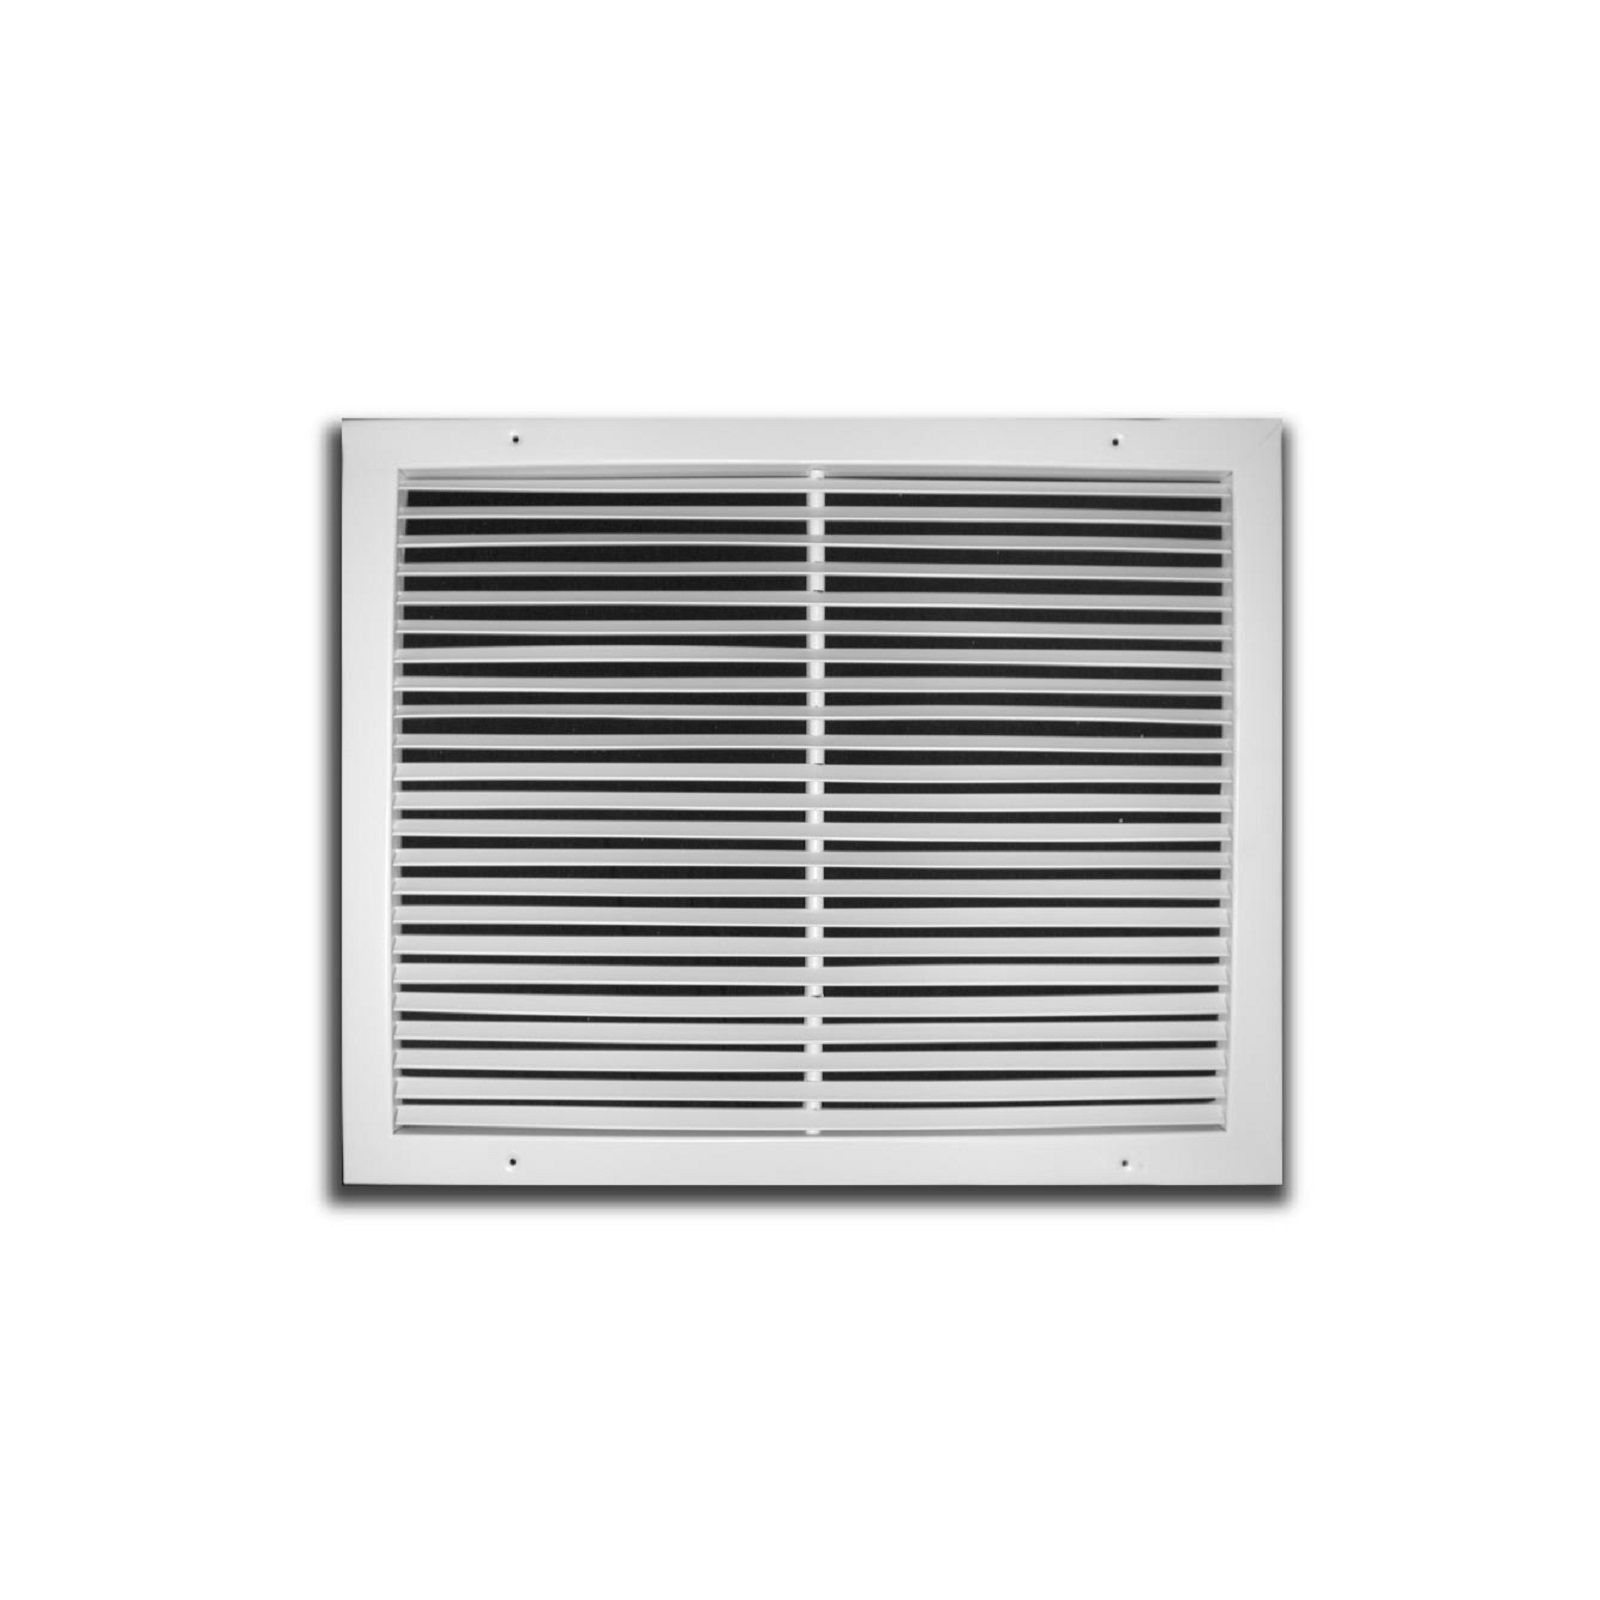 "TRUaire 270 16X08 - Steel Fixed Bar Return Air Grille, White, 16"" X 08"""